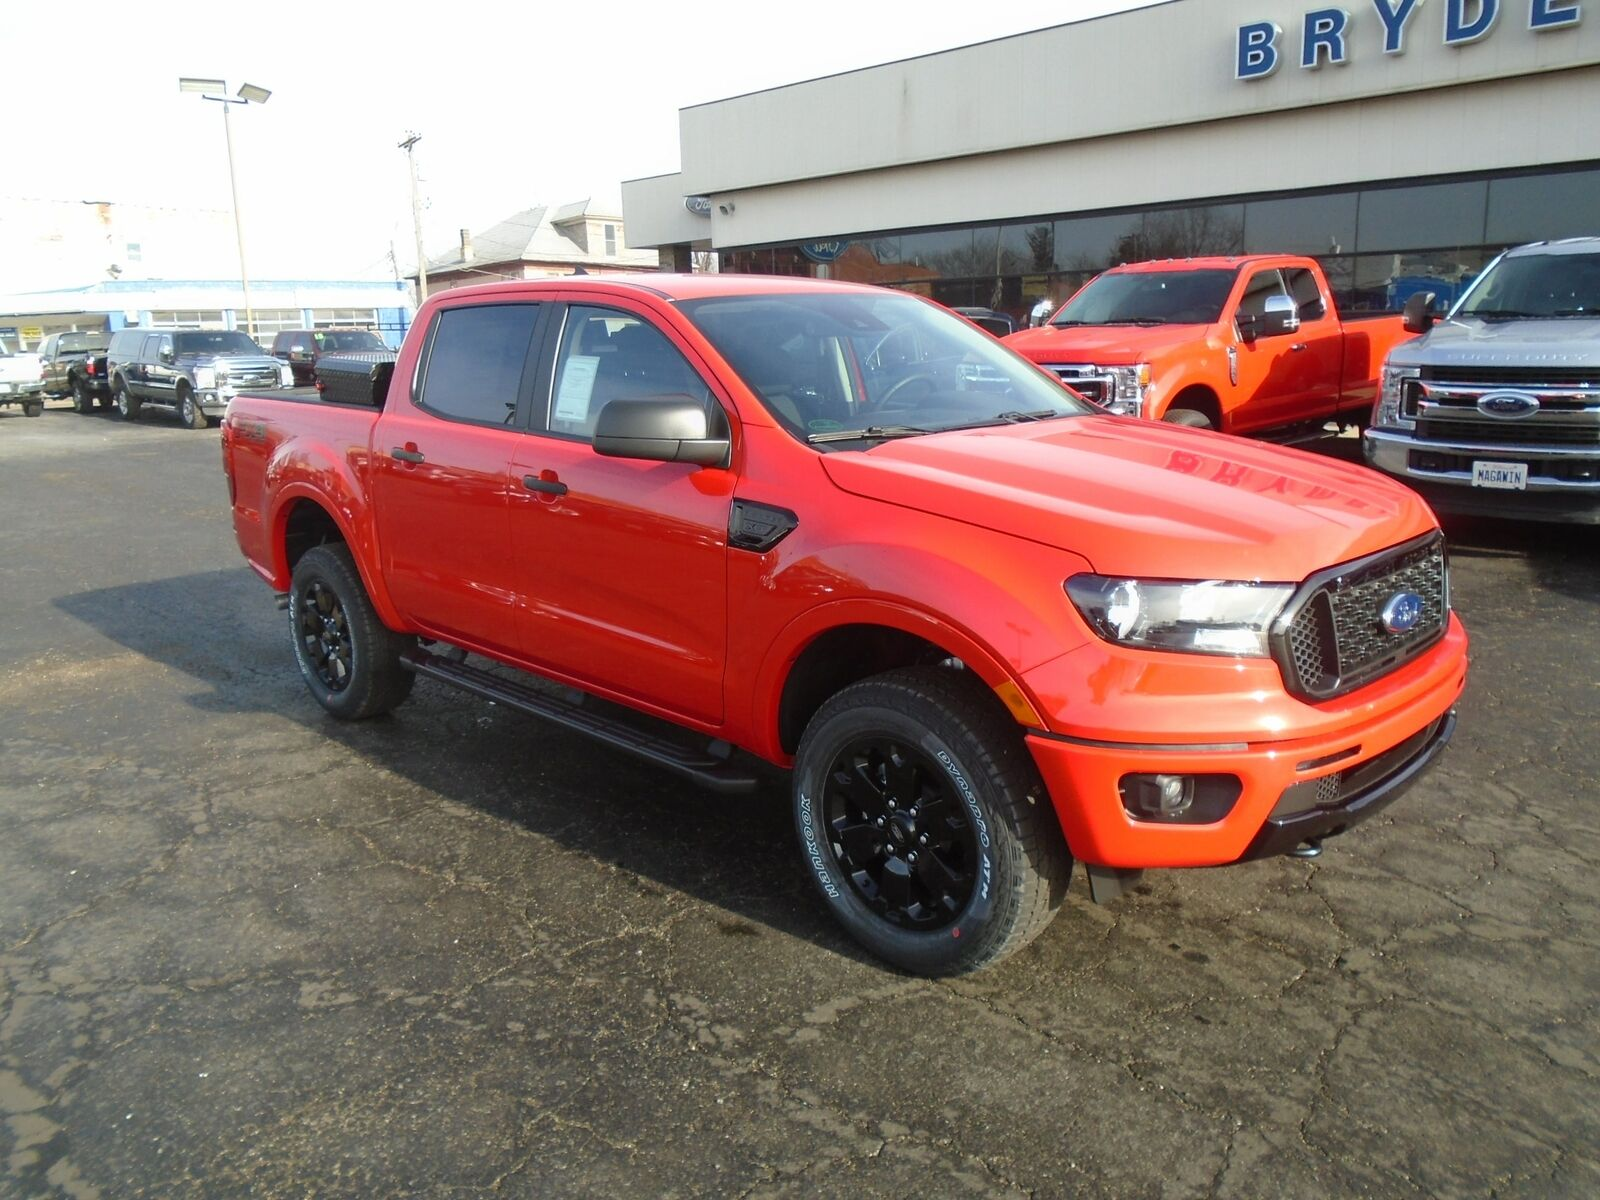 2020 Ford Ranger XLT 4X4 3 Miles Race Red Truck 2.3L EcoBoost Engine with Auto S